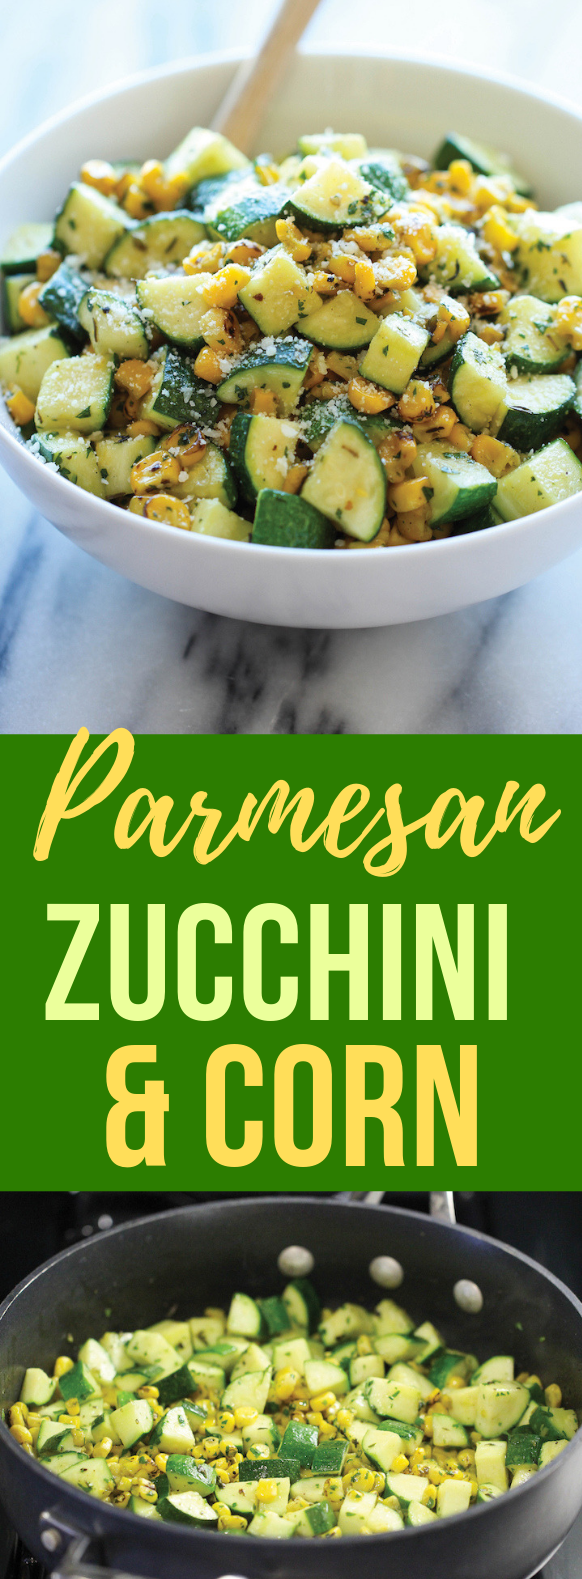 PARMESAN ZUCCHINI AND CORN #veggies #food